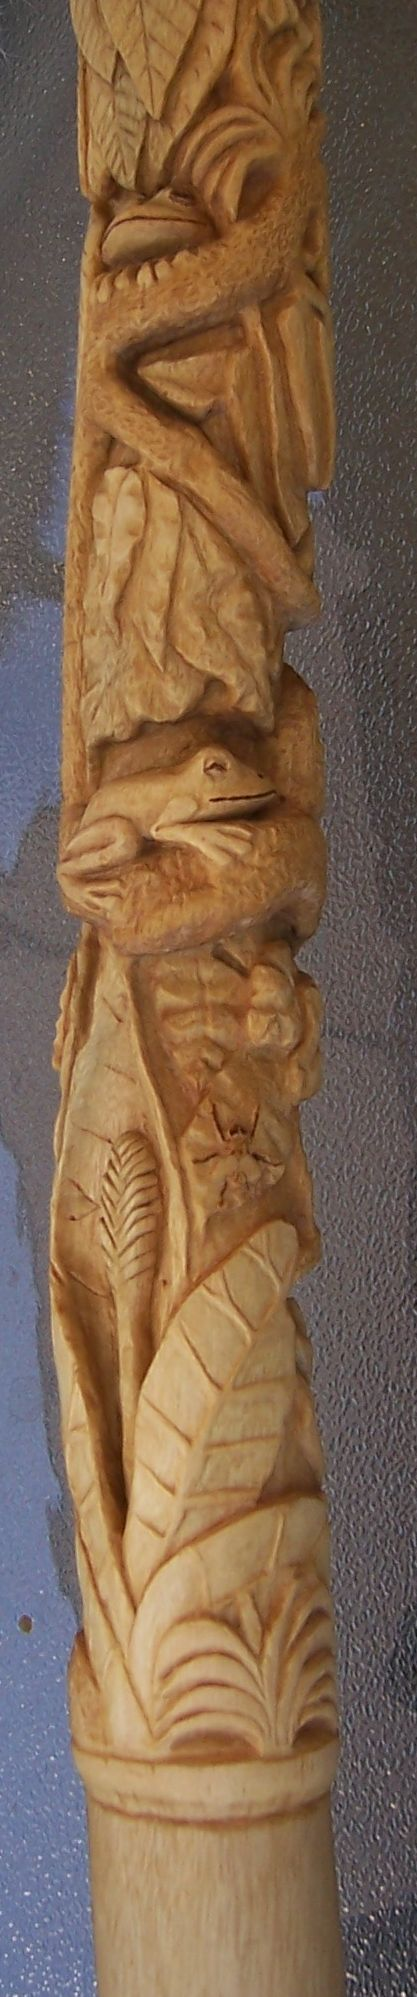 The Rainforest - a hand carved walking stick on Sycamore. tree frog, fly, flower